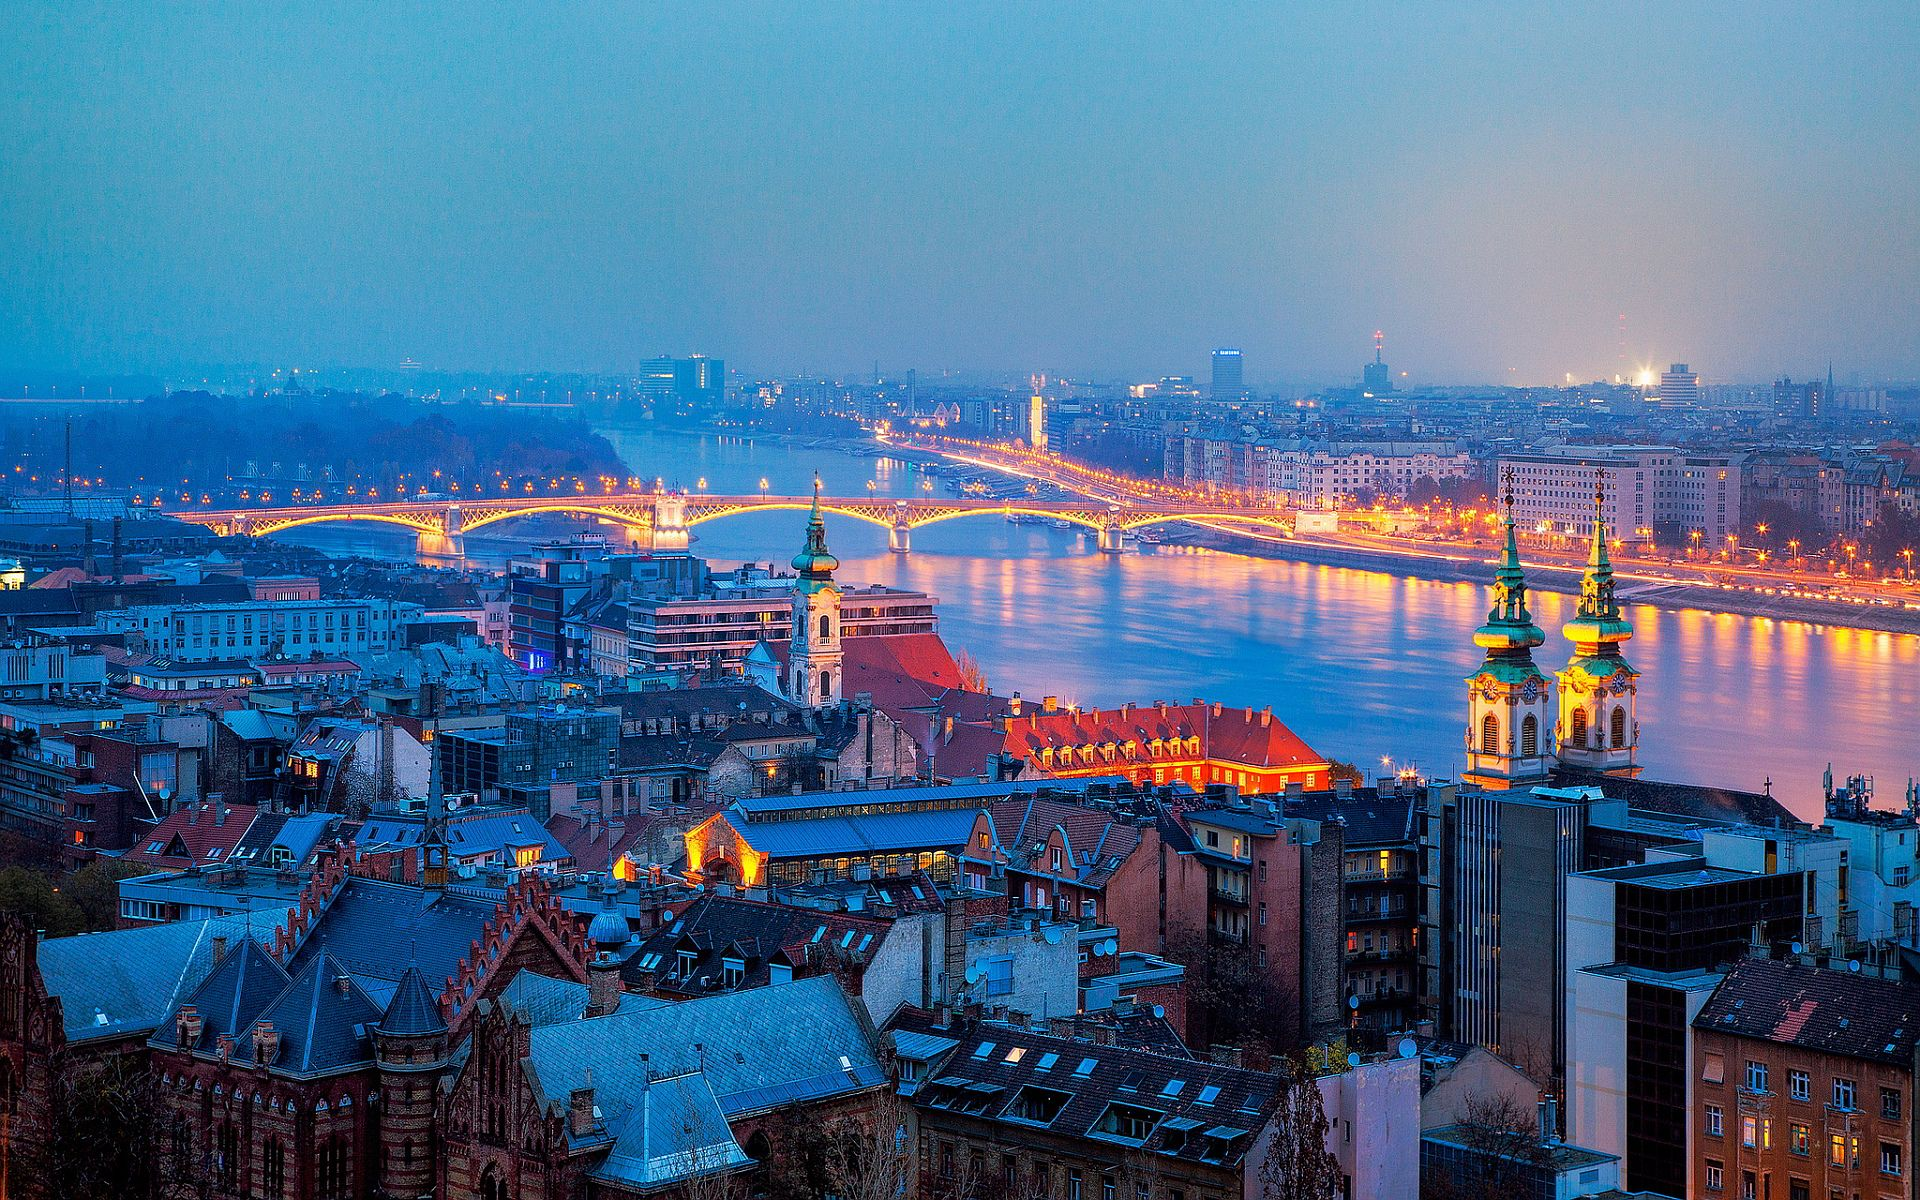 Hungary's scenery is more gentle than striking, more